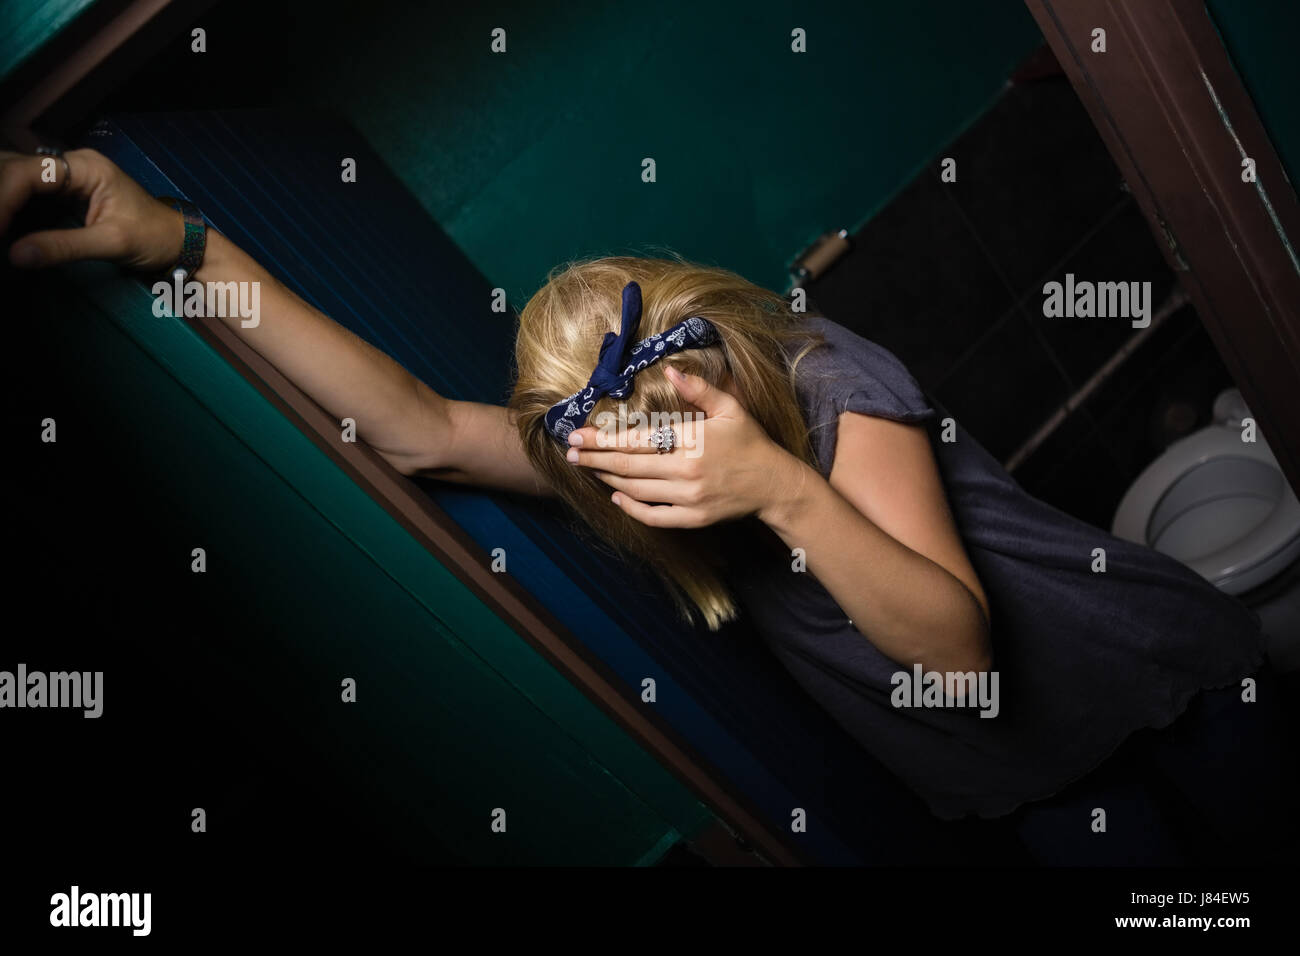 Unconscious drunk woman standing in the washroom Stock Photo